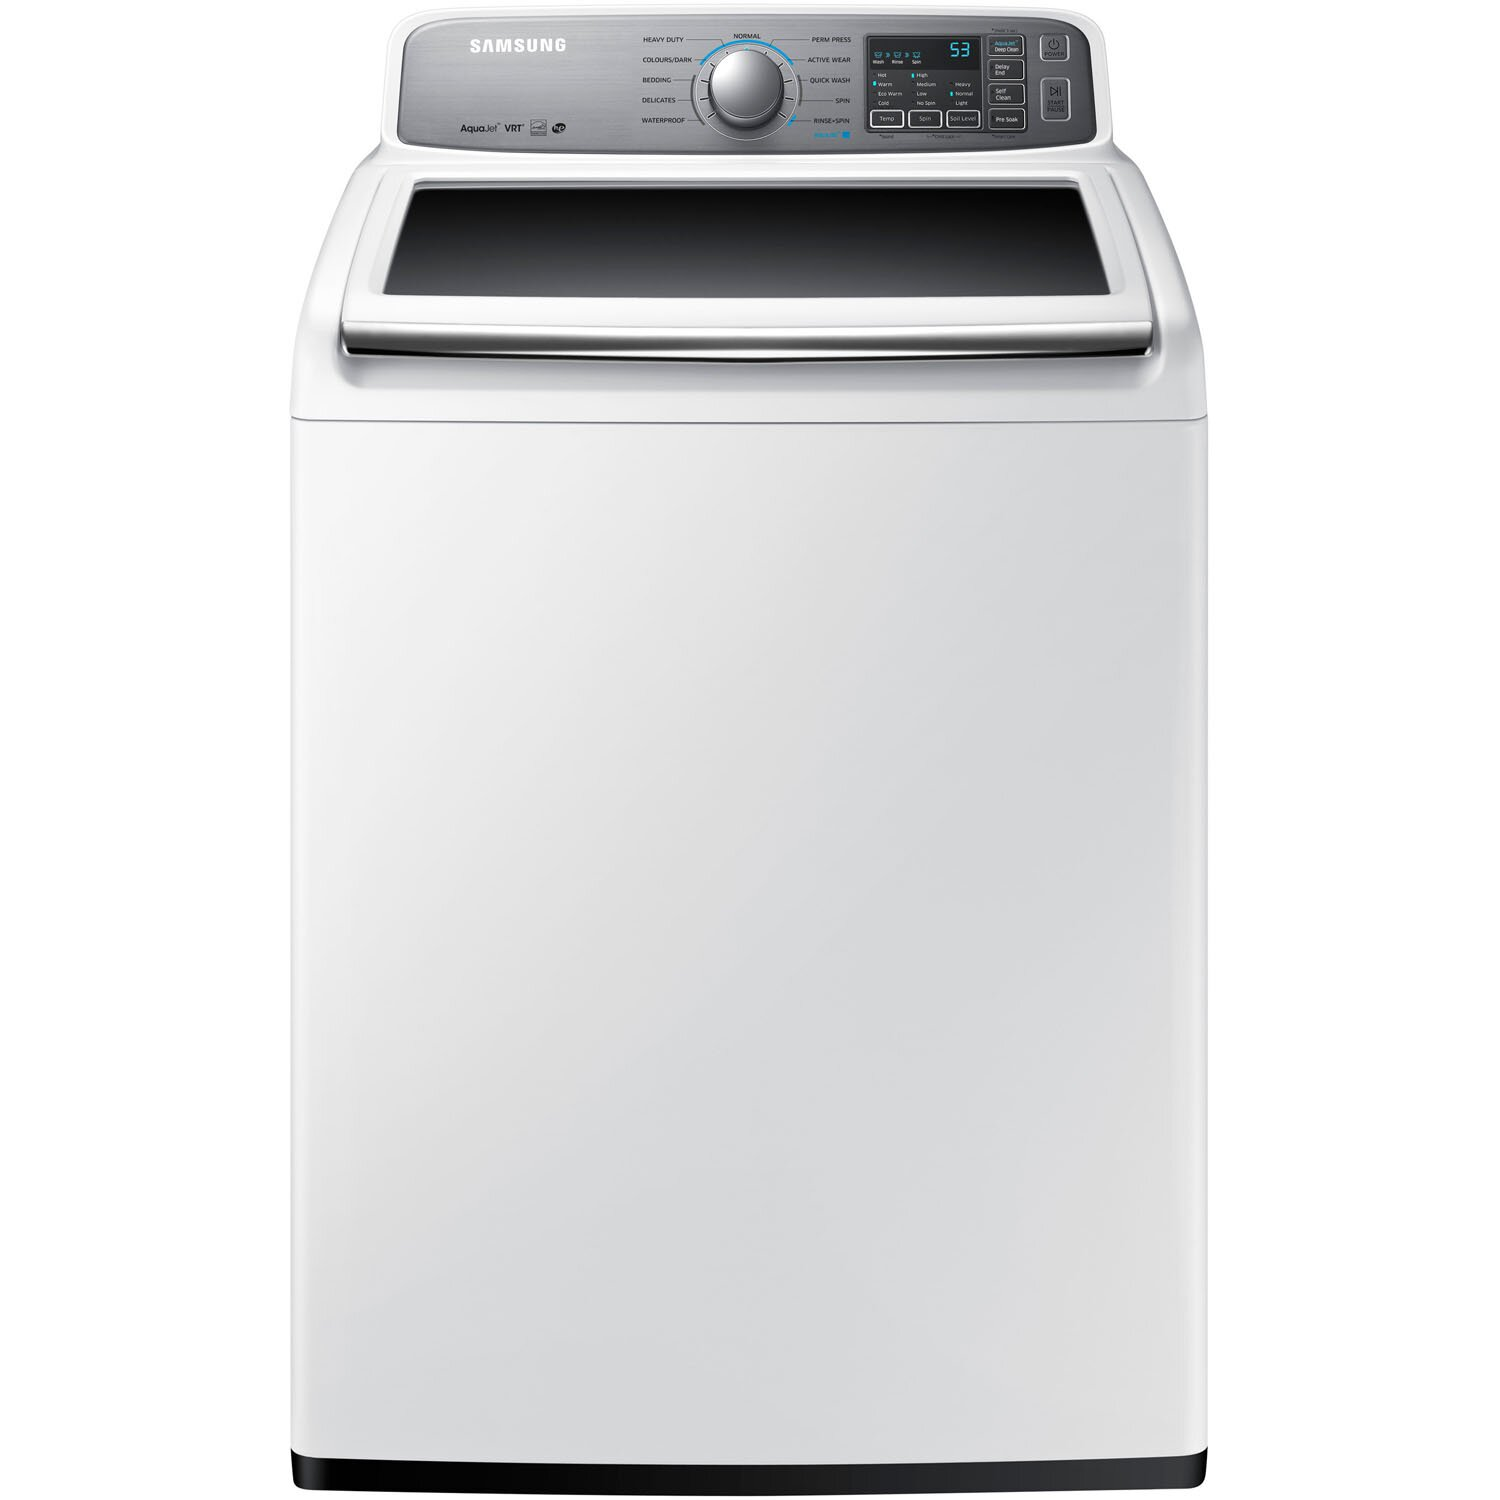 Regular Washer Vs He Washer Samsung Cu Ft Top Loading Washer Wahaw